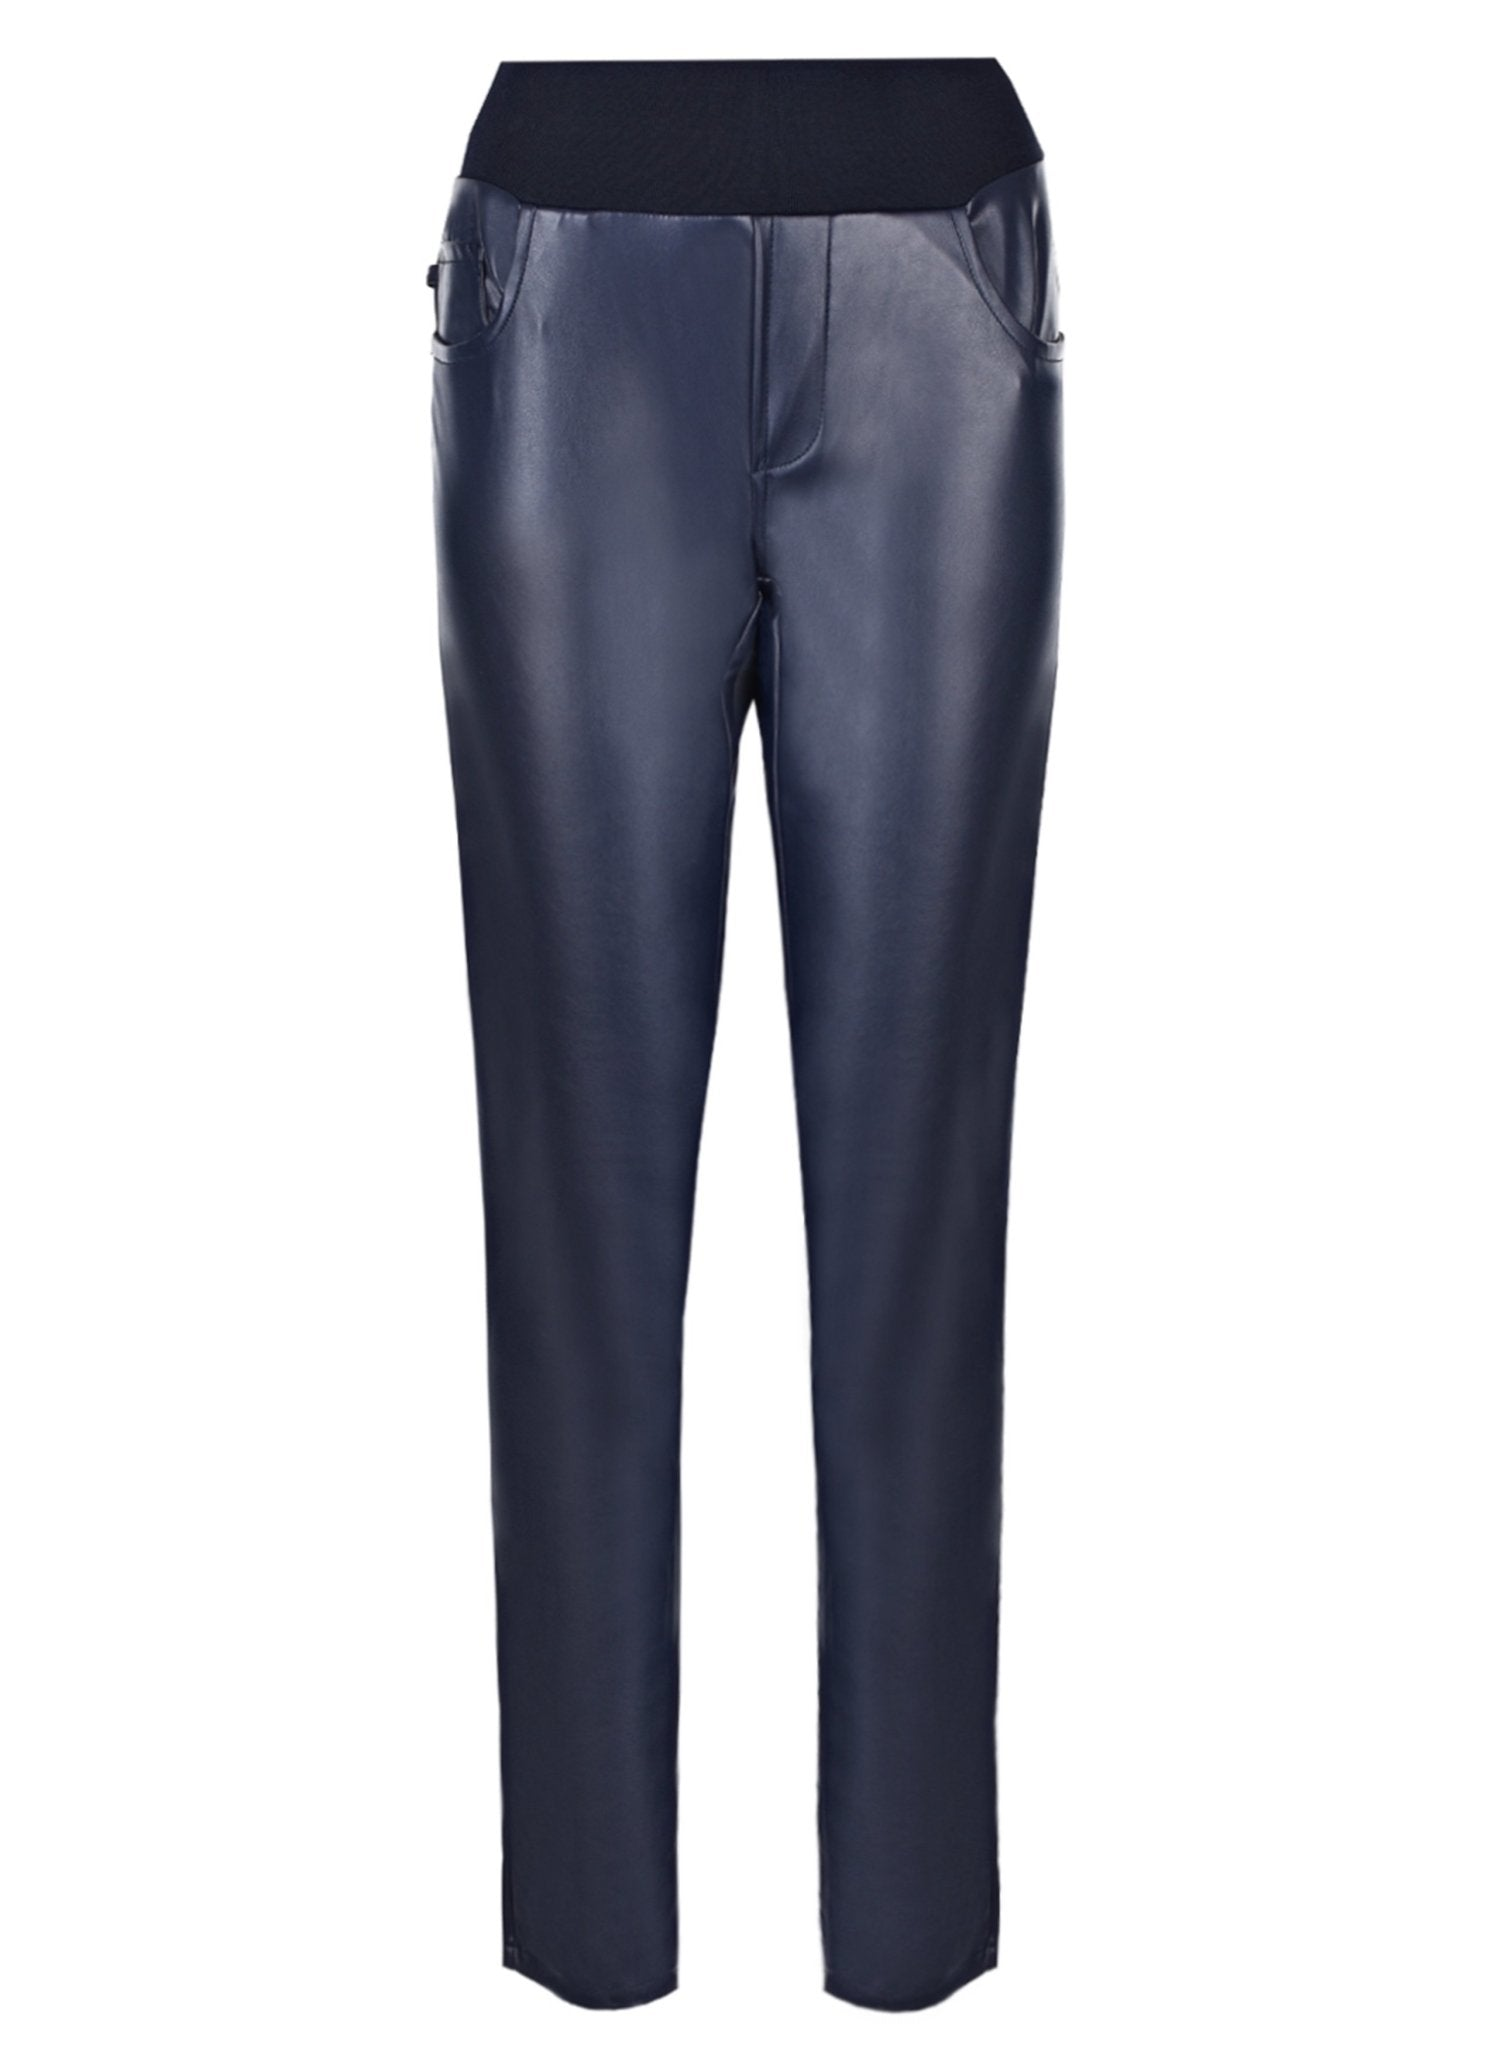 Ultra Skinny Leather Maternity Pants - Blue - Mums and Bumps